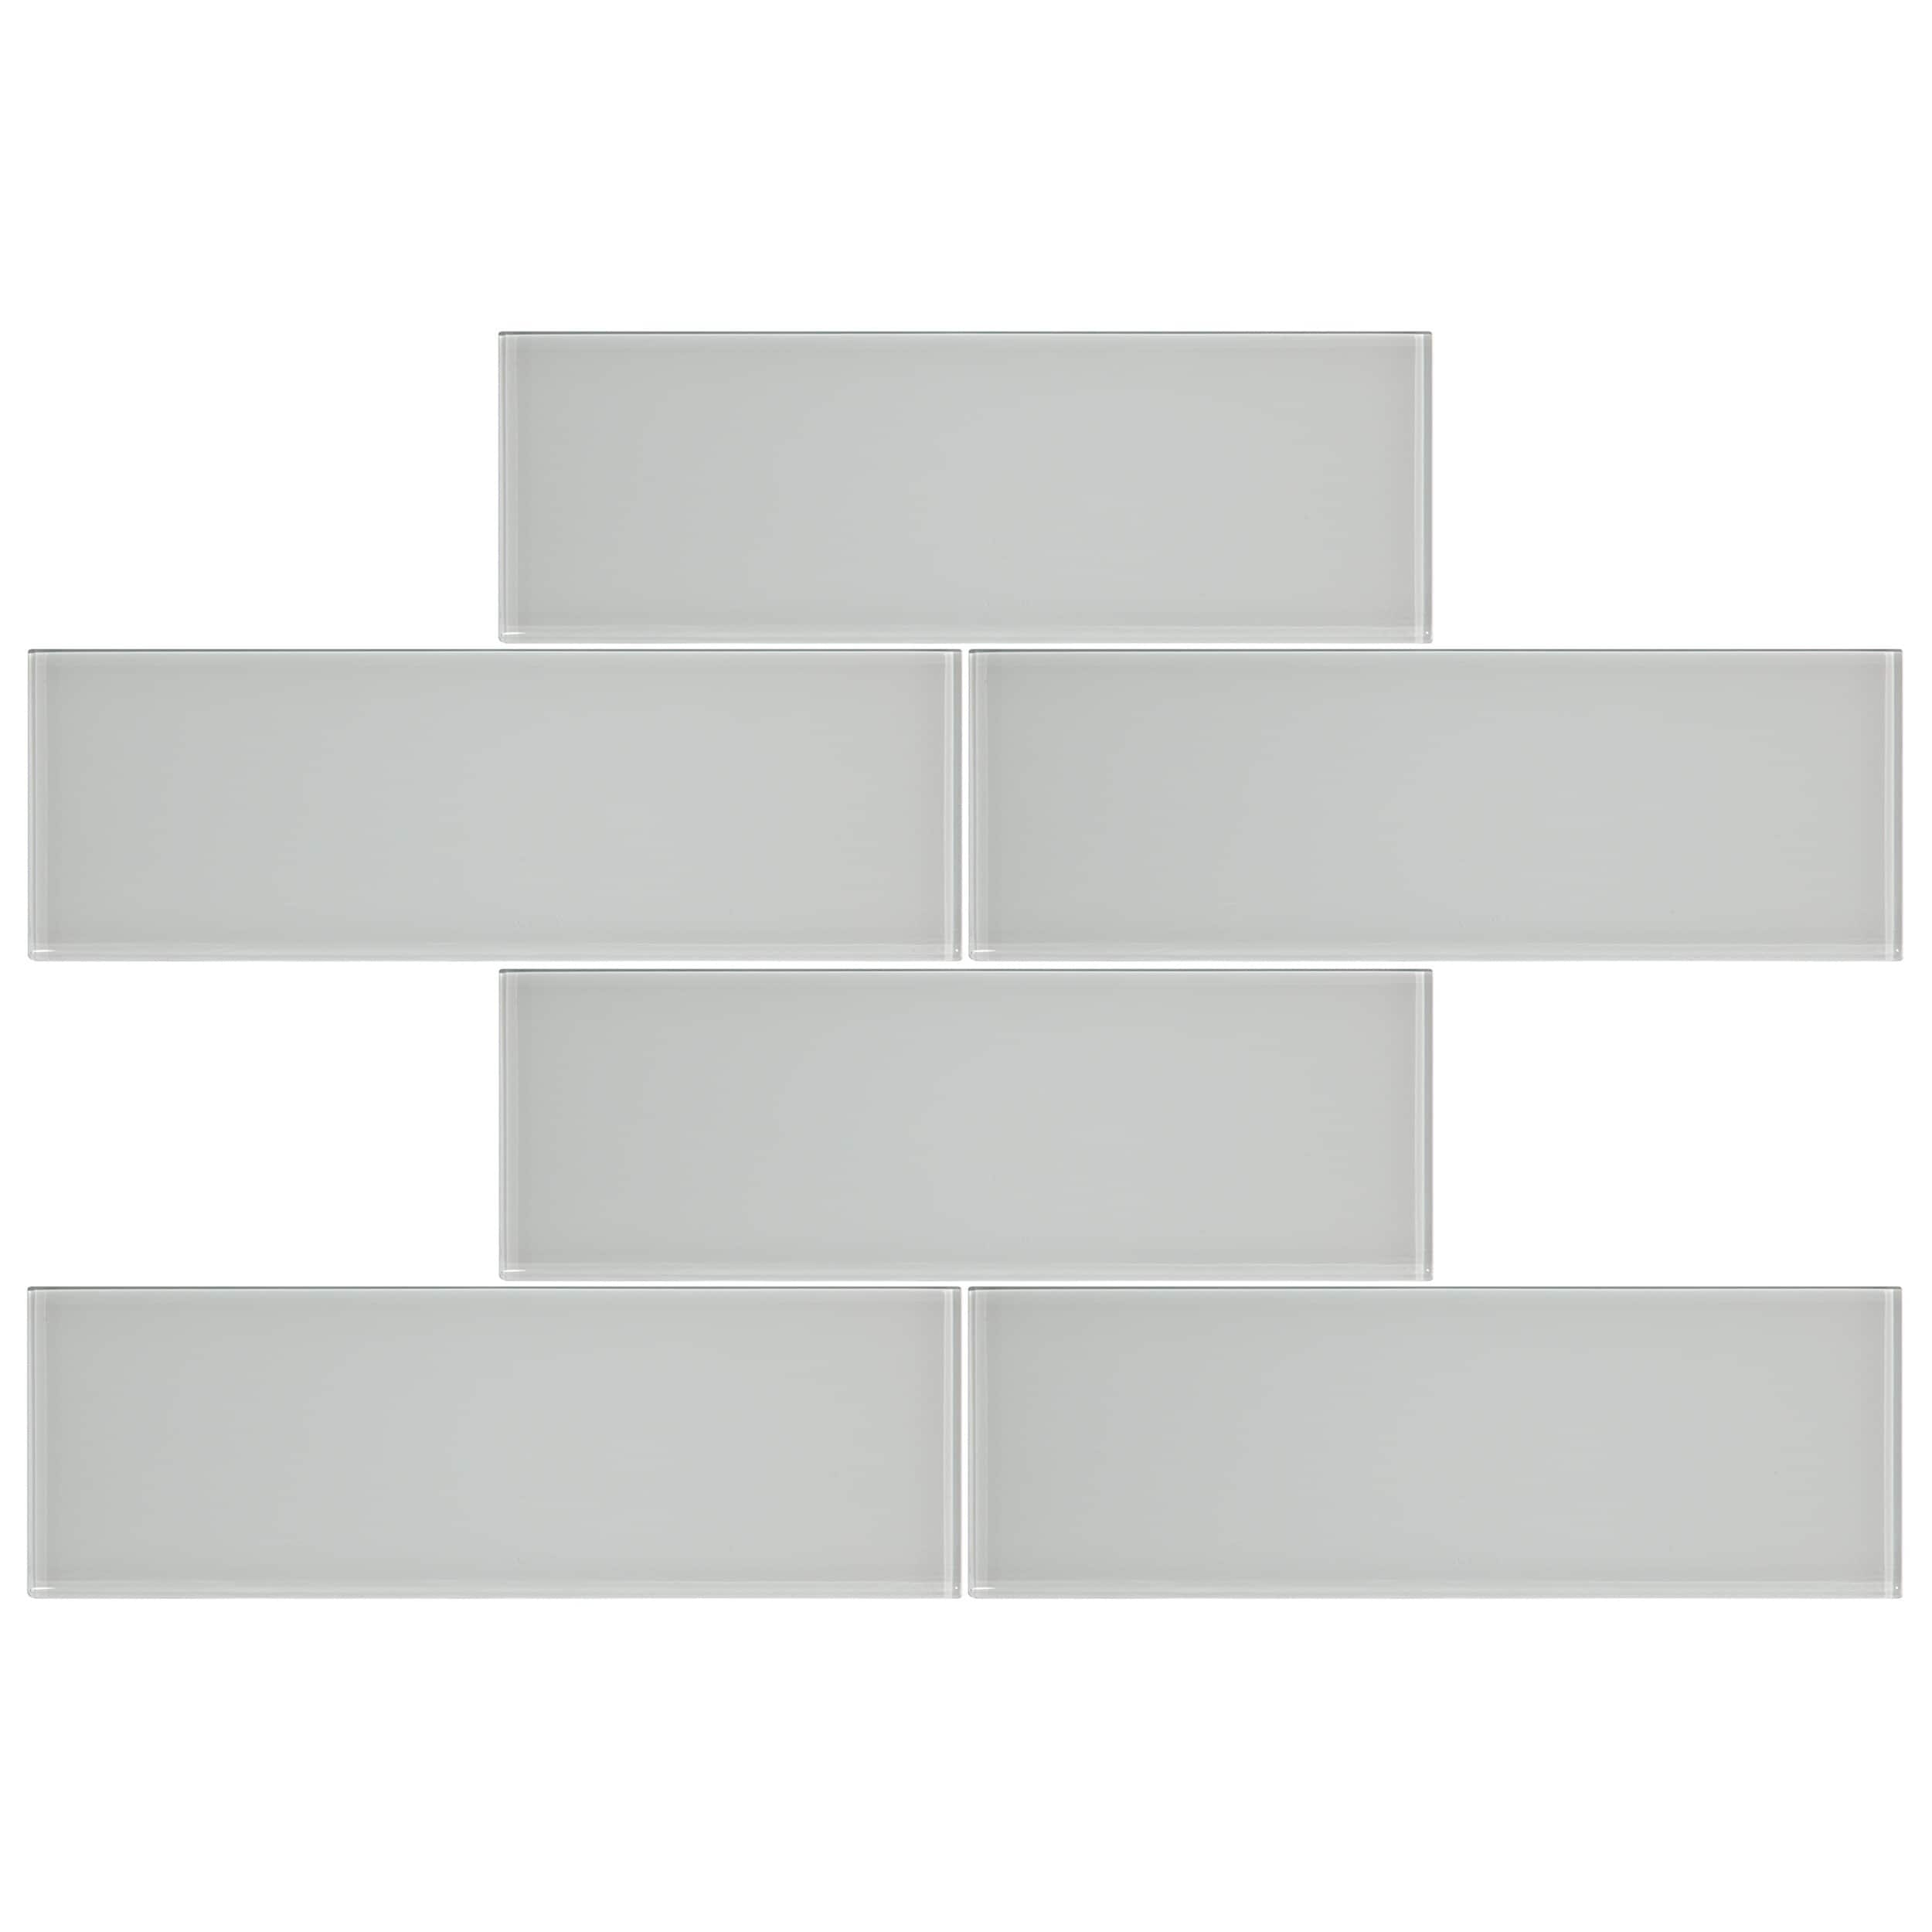 Comfortable 18X18 Ceramic Tile Tiny 1X1 Ceramic Tile Rectangular 2X2 Acoustical Ceiling Tiles 2X2 Ceiling Tiles Young 3X6 Beveled Subway Tile Blue6X6 Floor Tile SomerTile 4x12 Inch Reflections Grand Subway Ice White Glass Wall ..